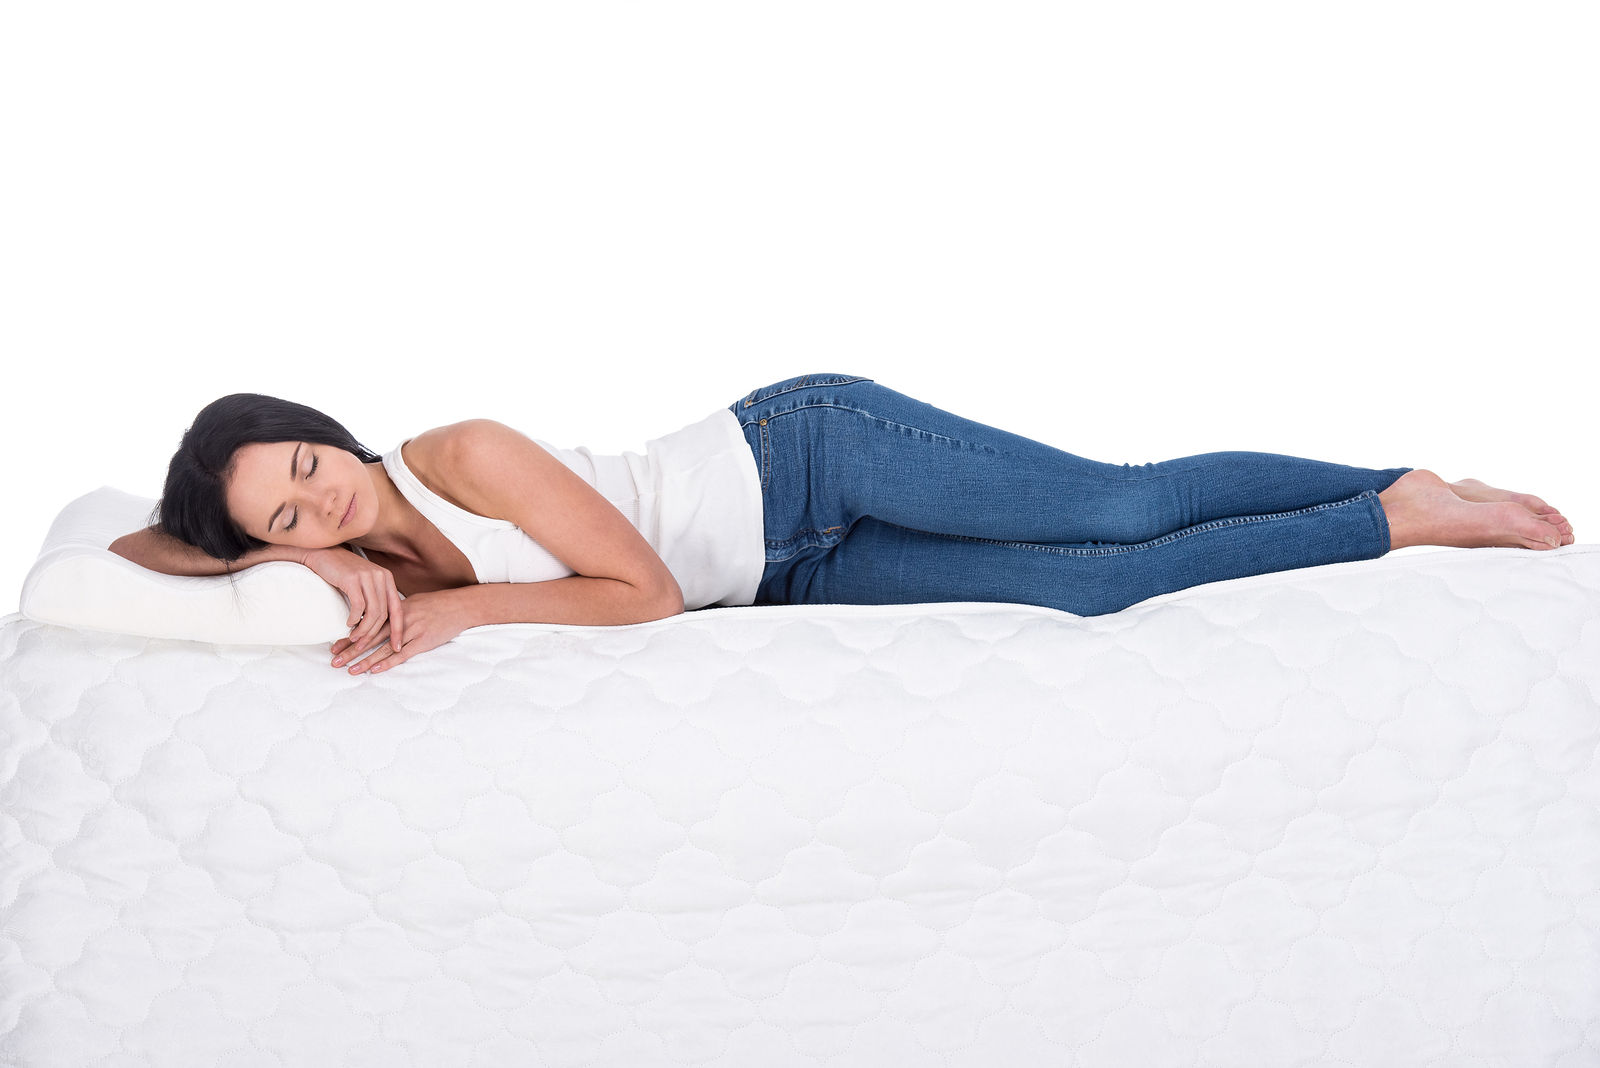 au chiropractor reviews p productreview king flex recommended chiro mattress com koil